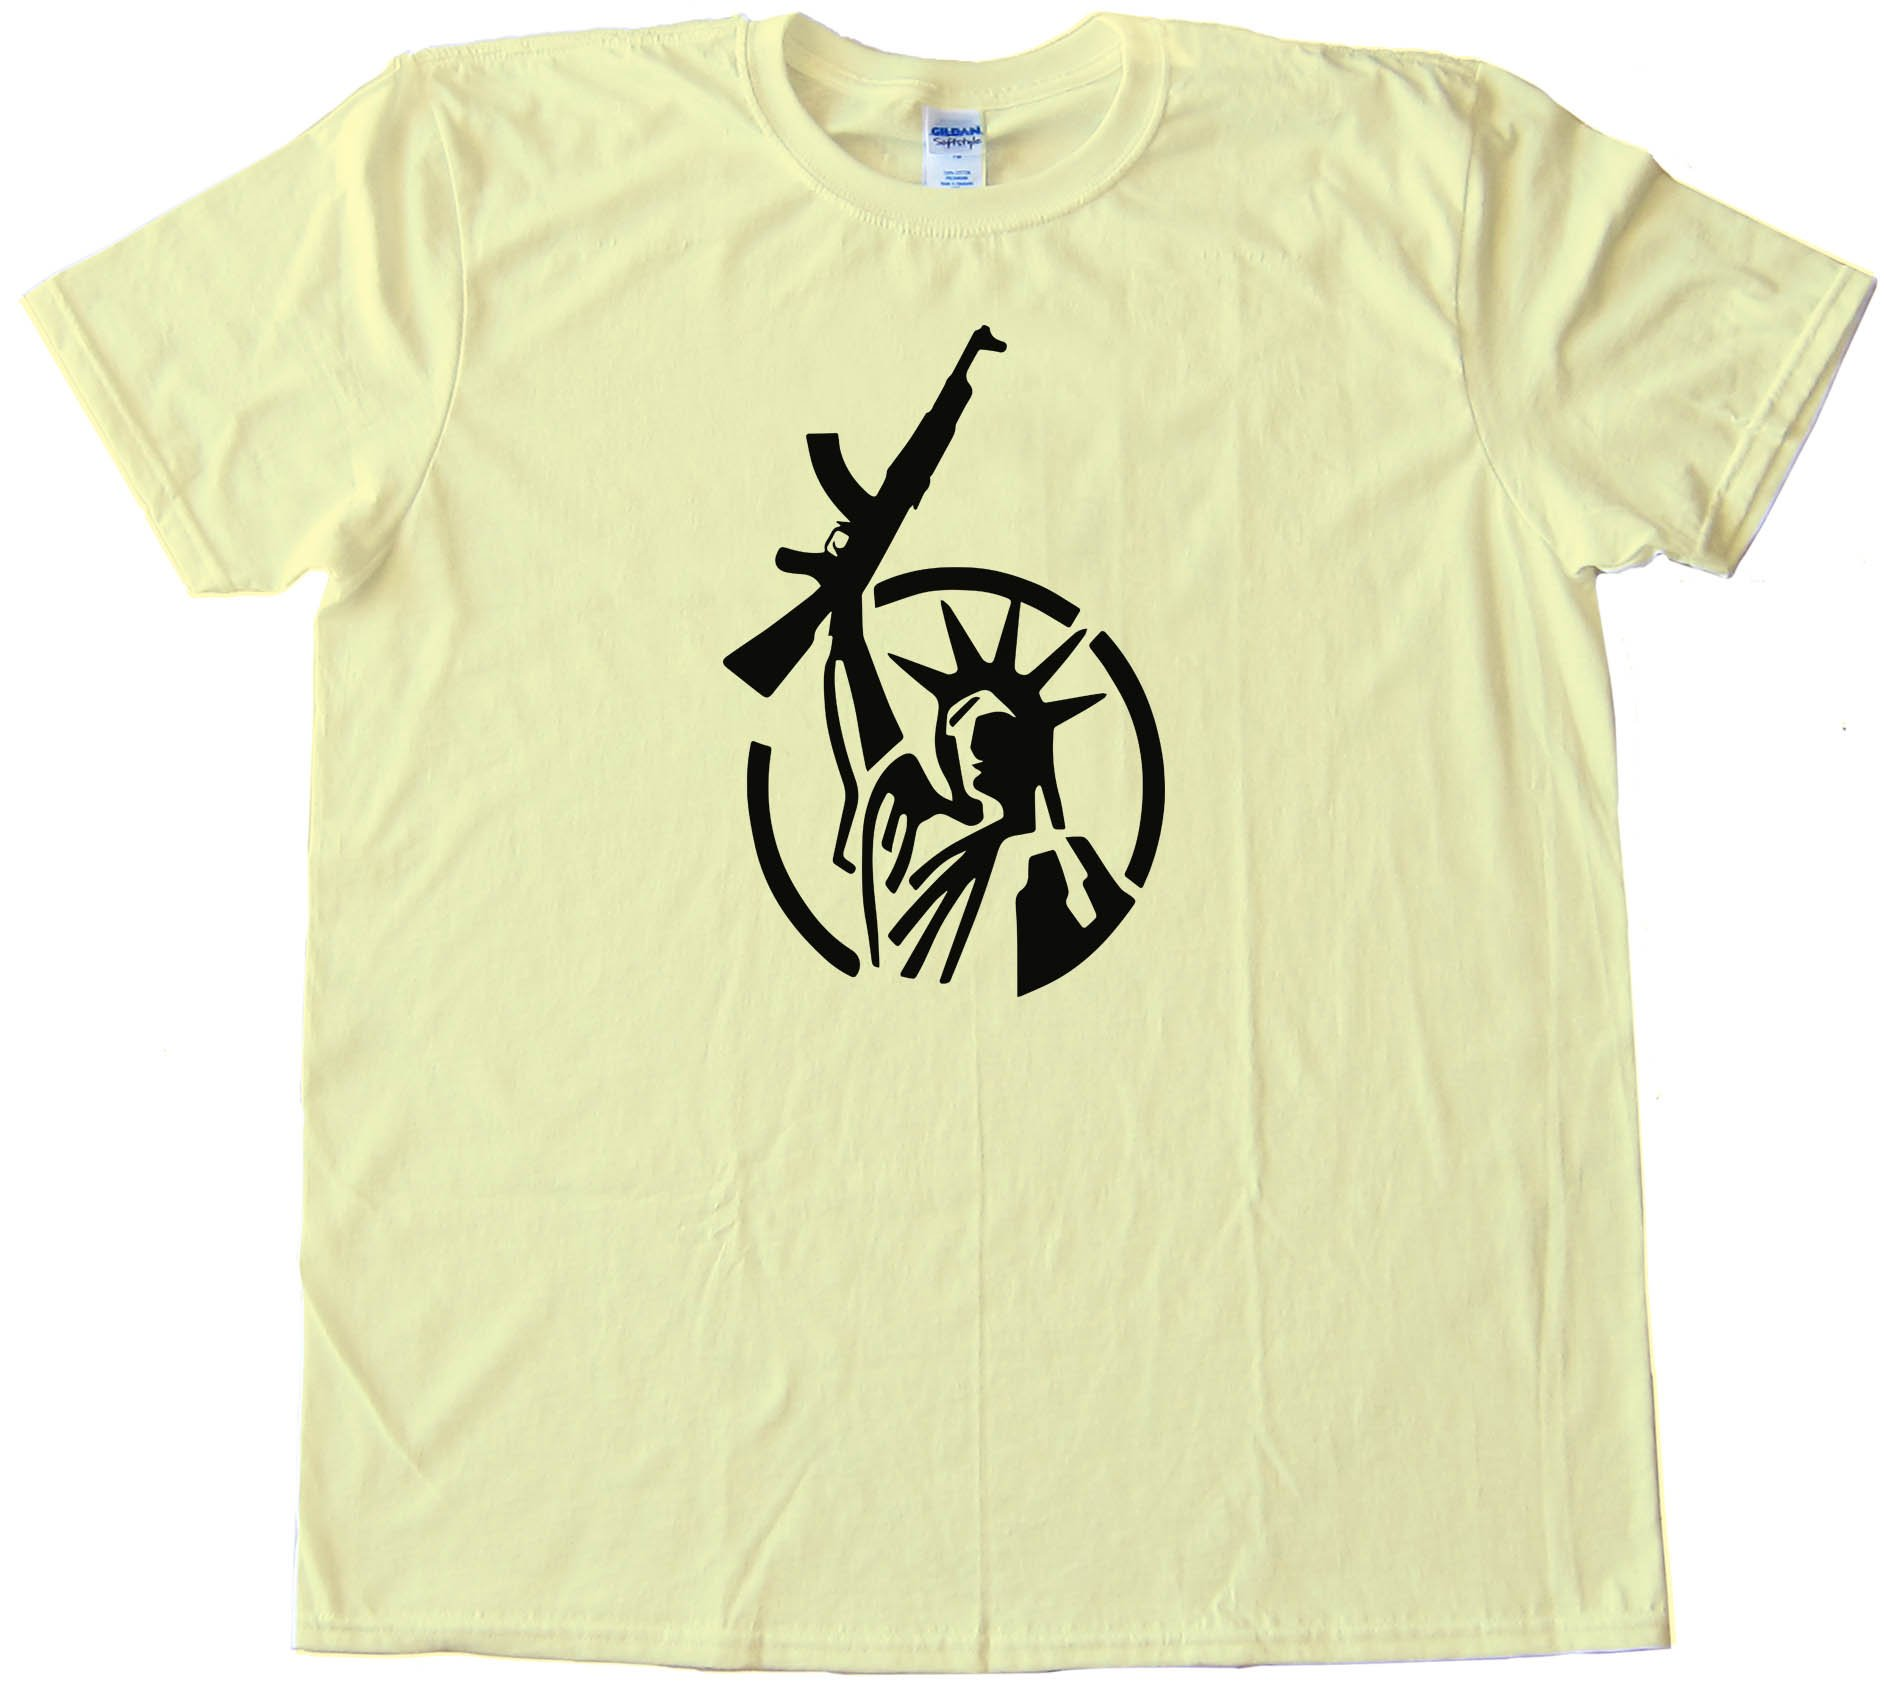 Statue Of Liberty With Ar-15 Rifle - Tee Shirt